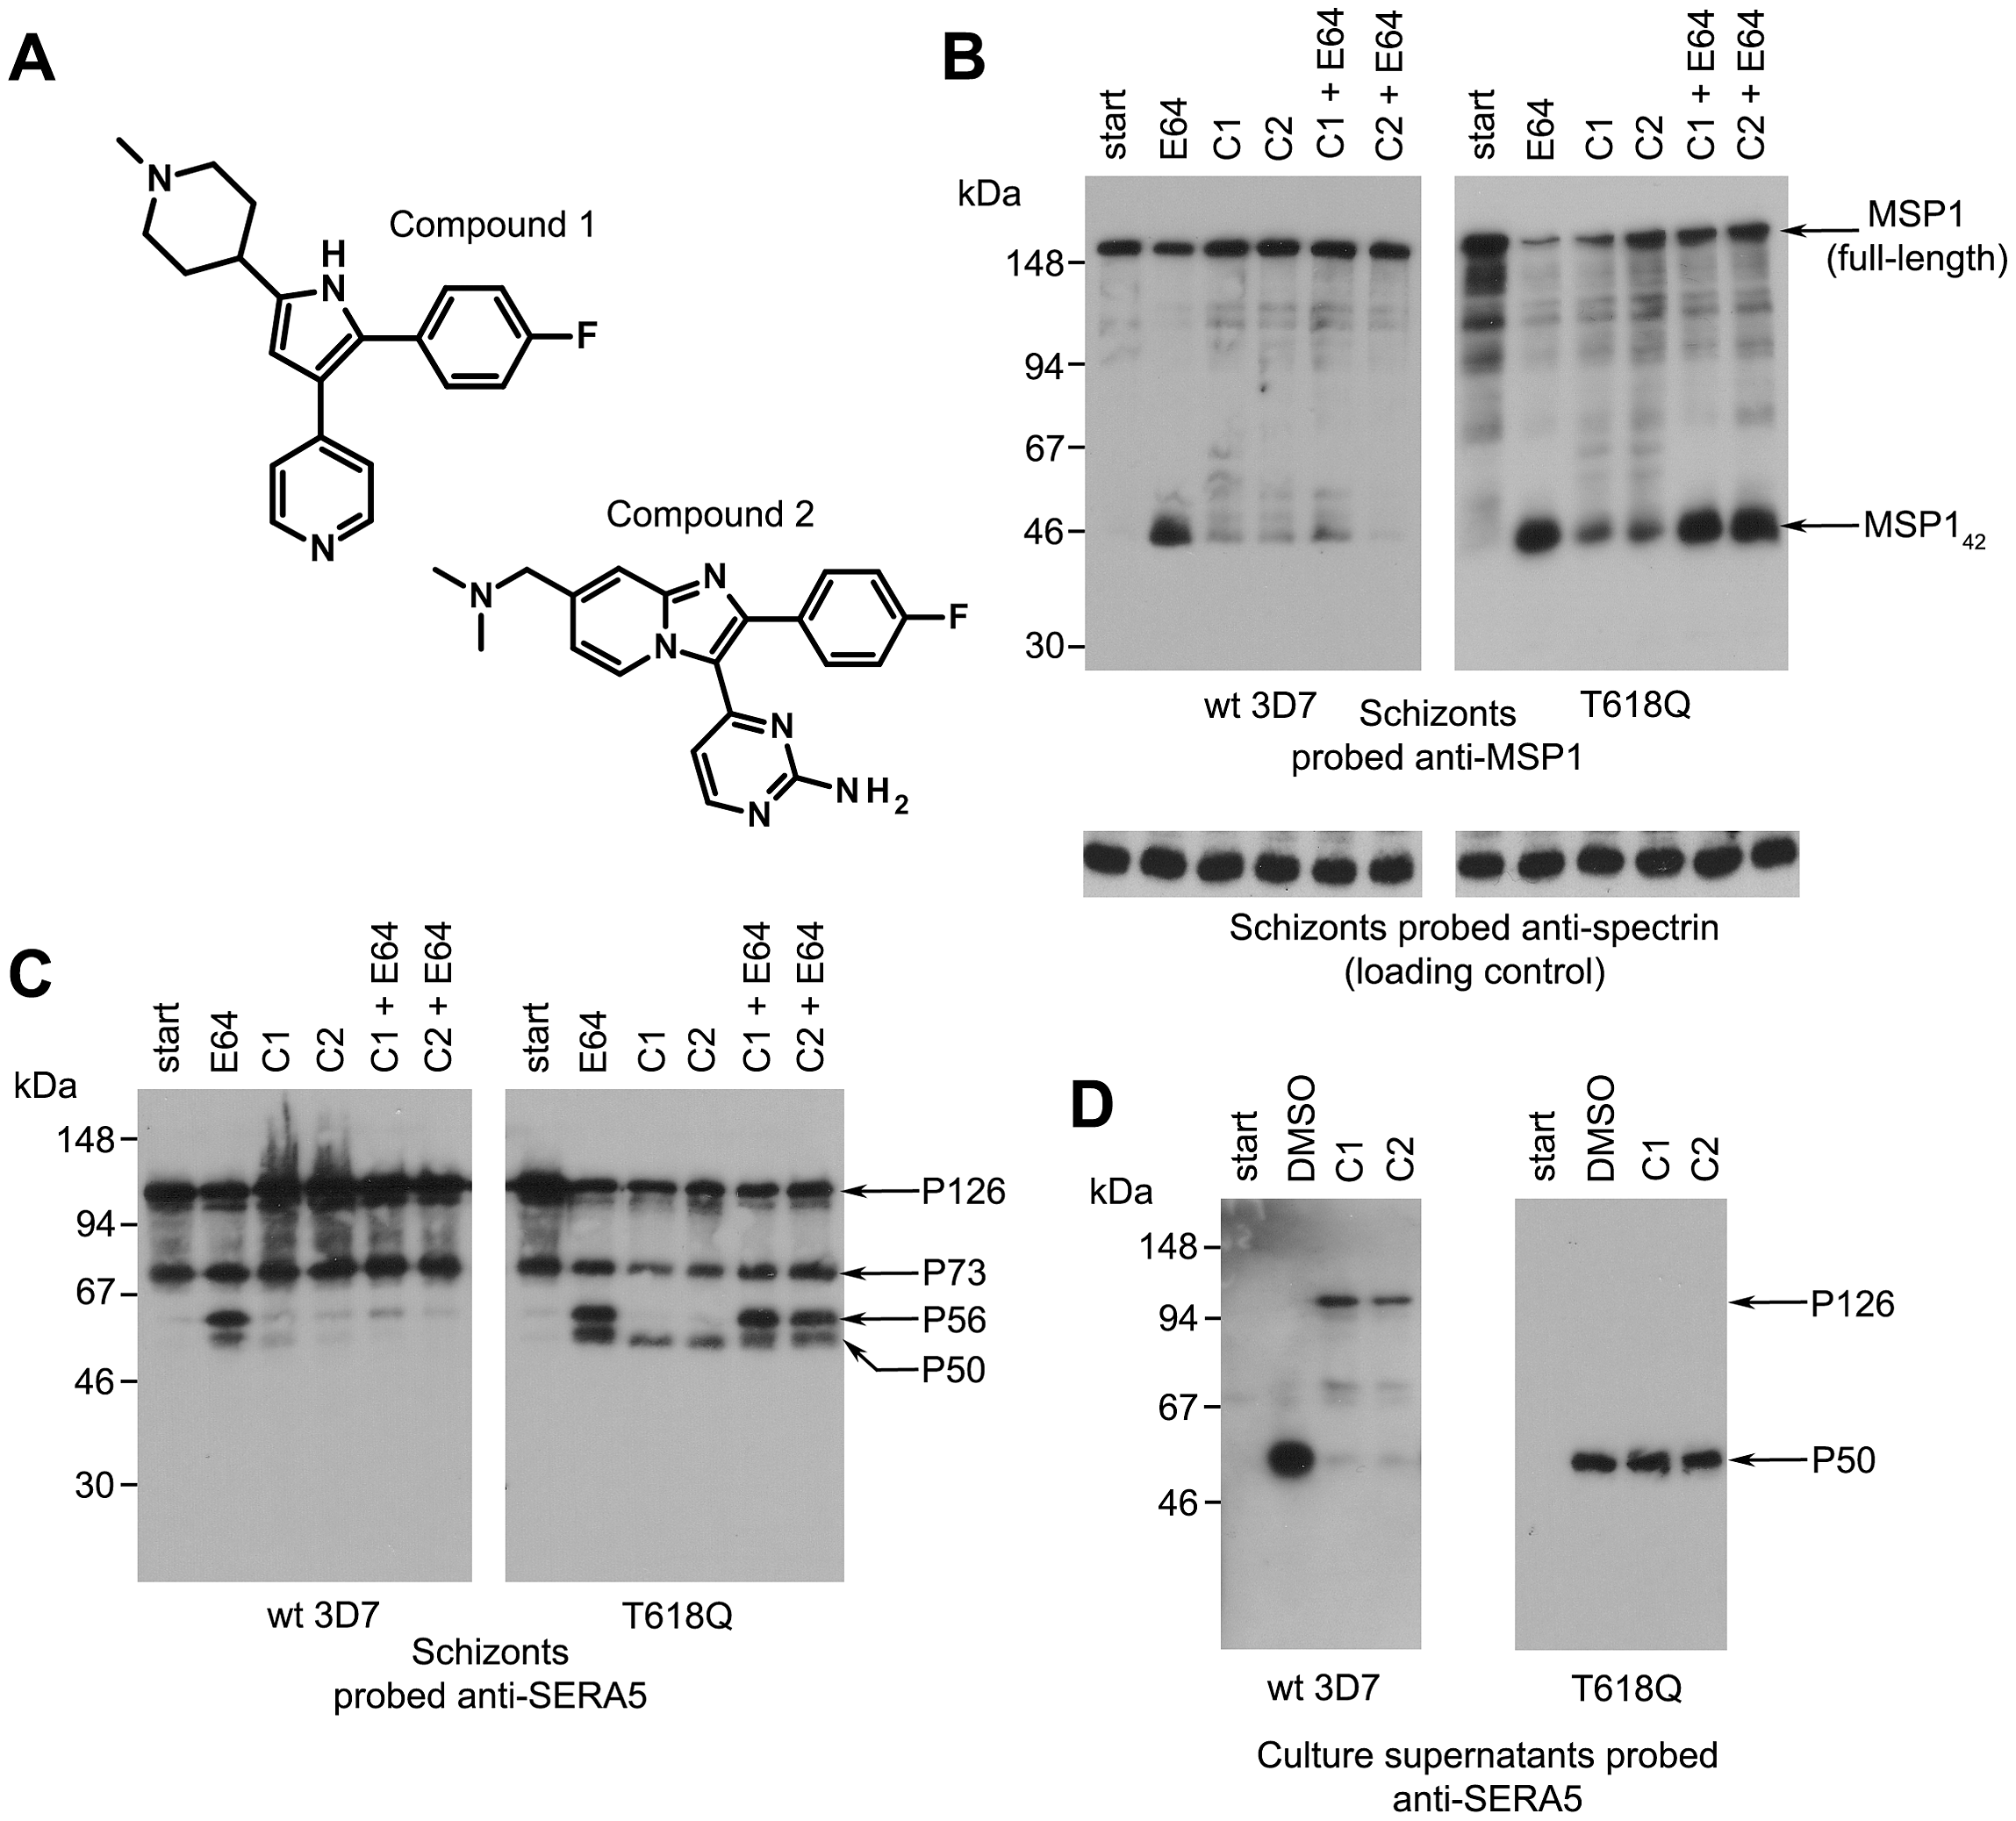 Structurally distinct PfPKG inhibitors block PfSUB1-mediated proteolytic processing in <i>P. falciparum</i>.